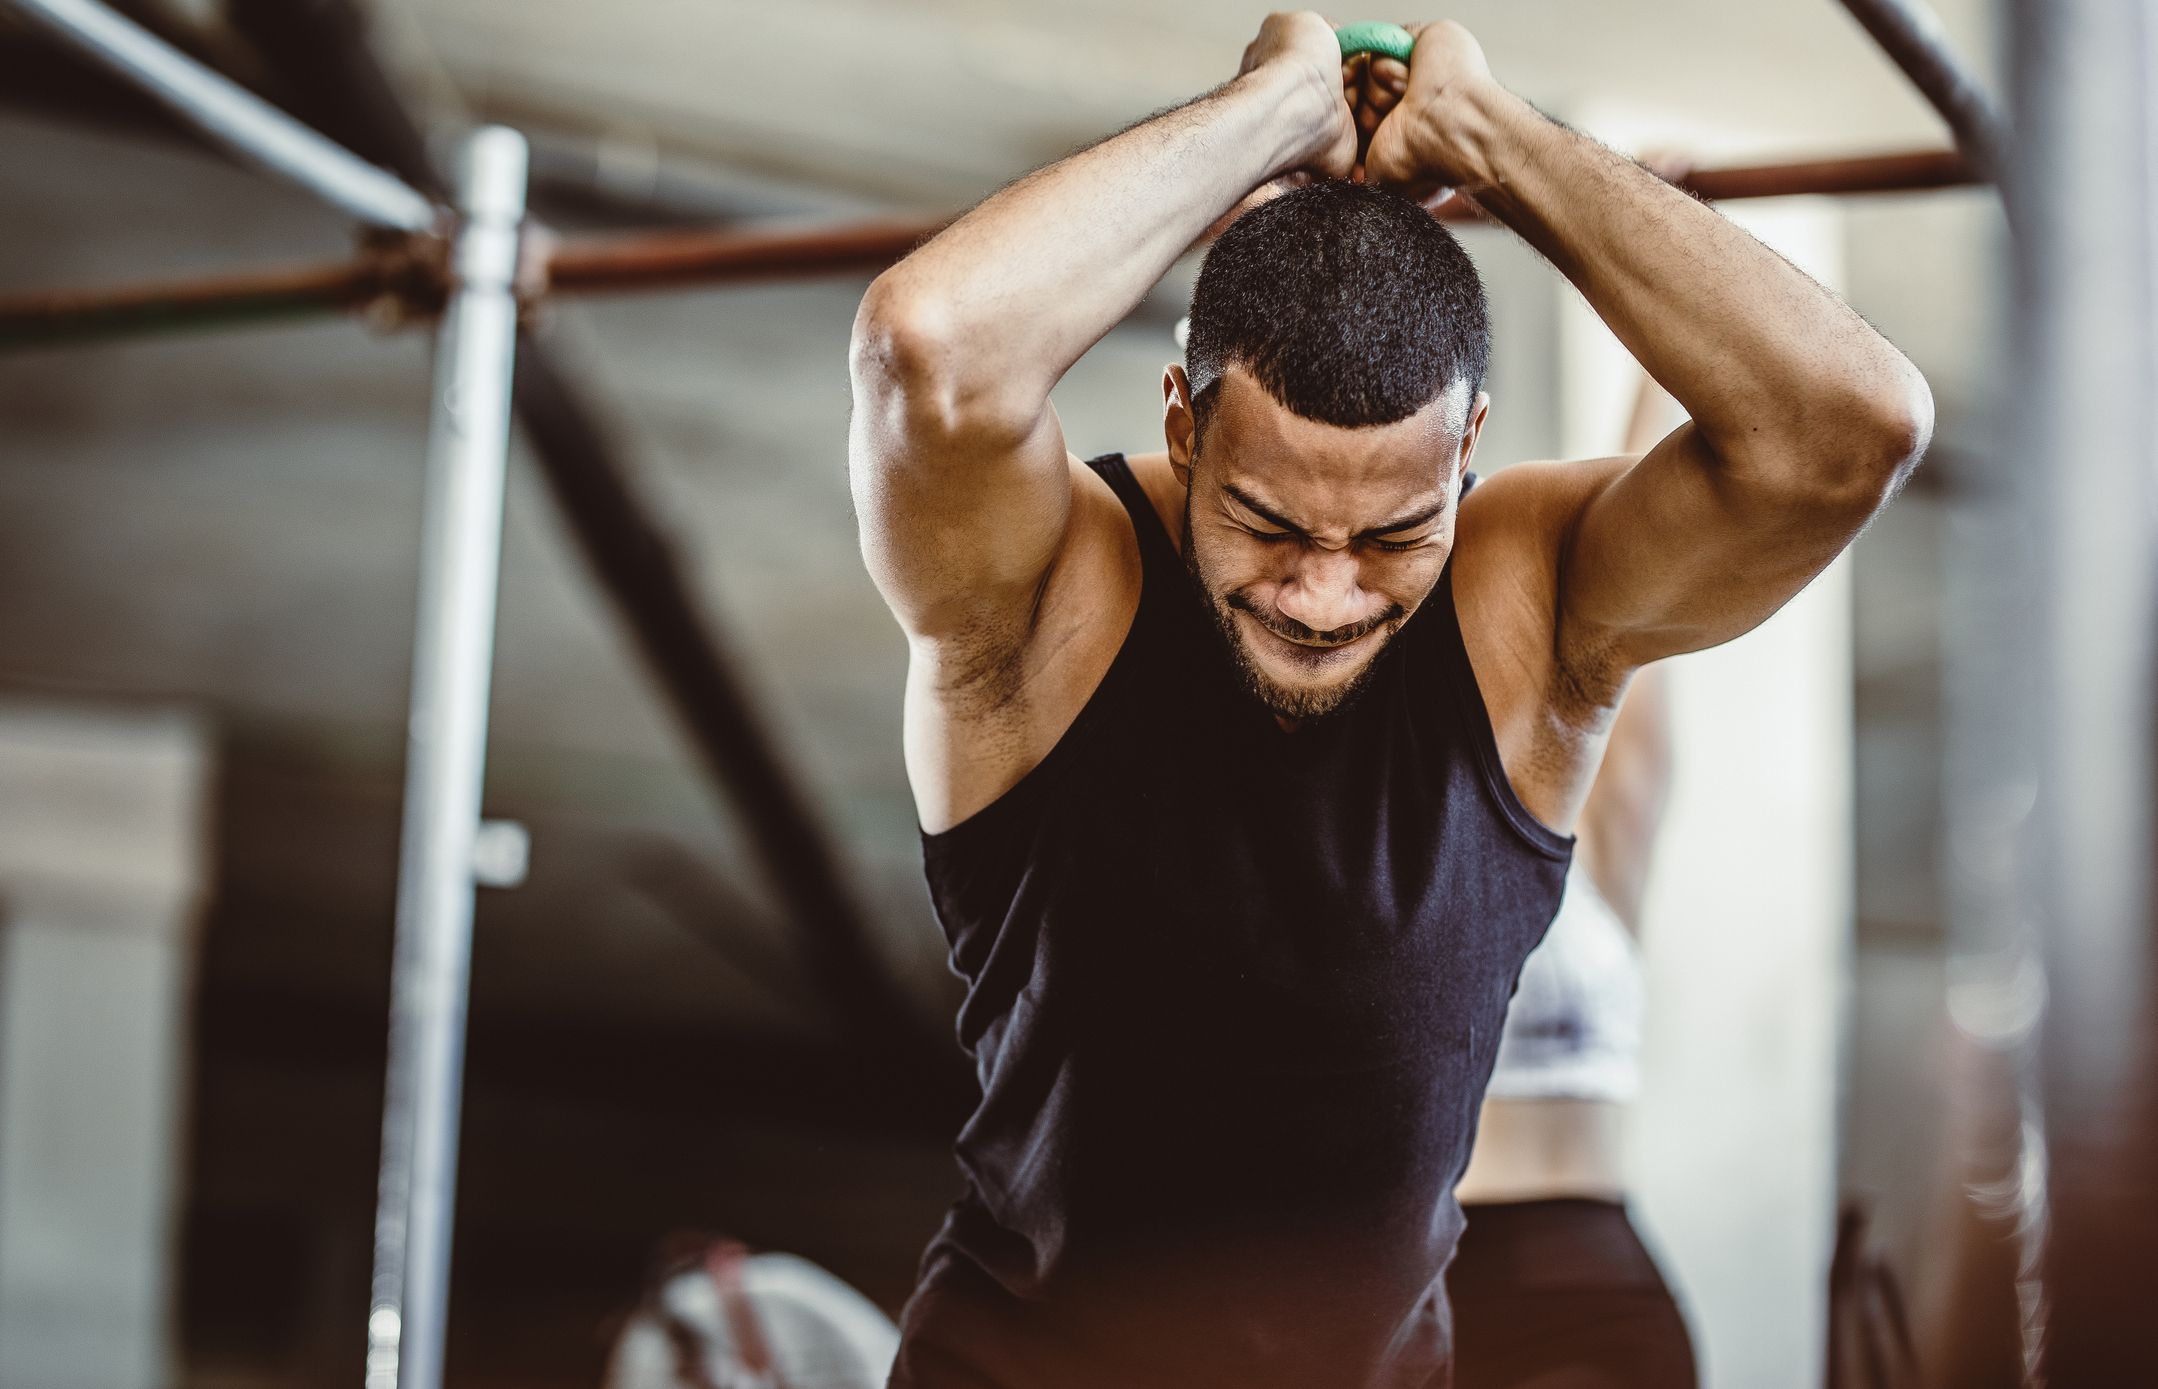 Tricep Exercises 10 Of The Best To Build Muscle